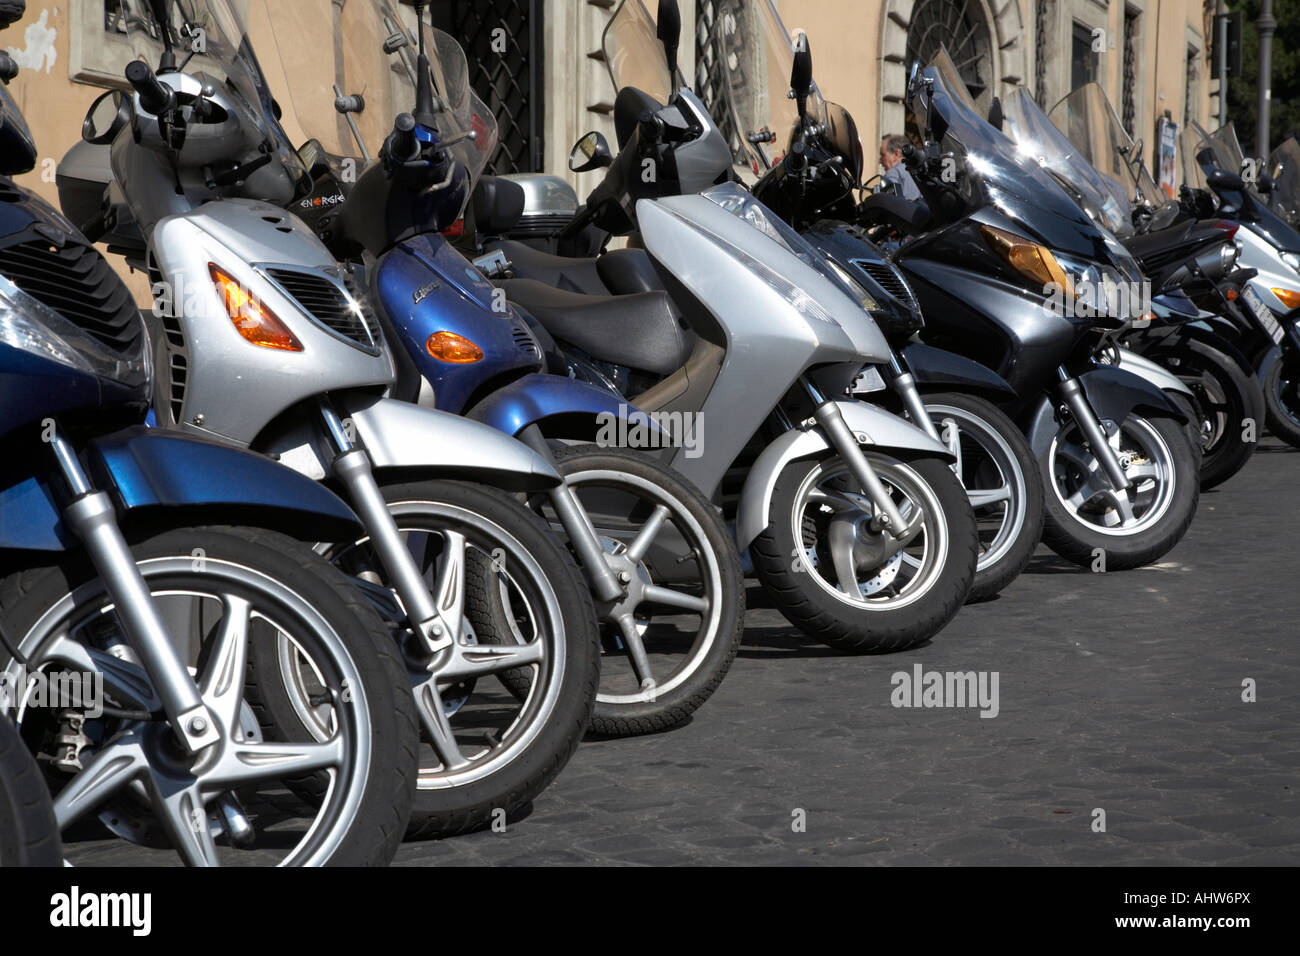 Row of front of scooters parked on a street in Rome Lazio Italy - Stock Image